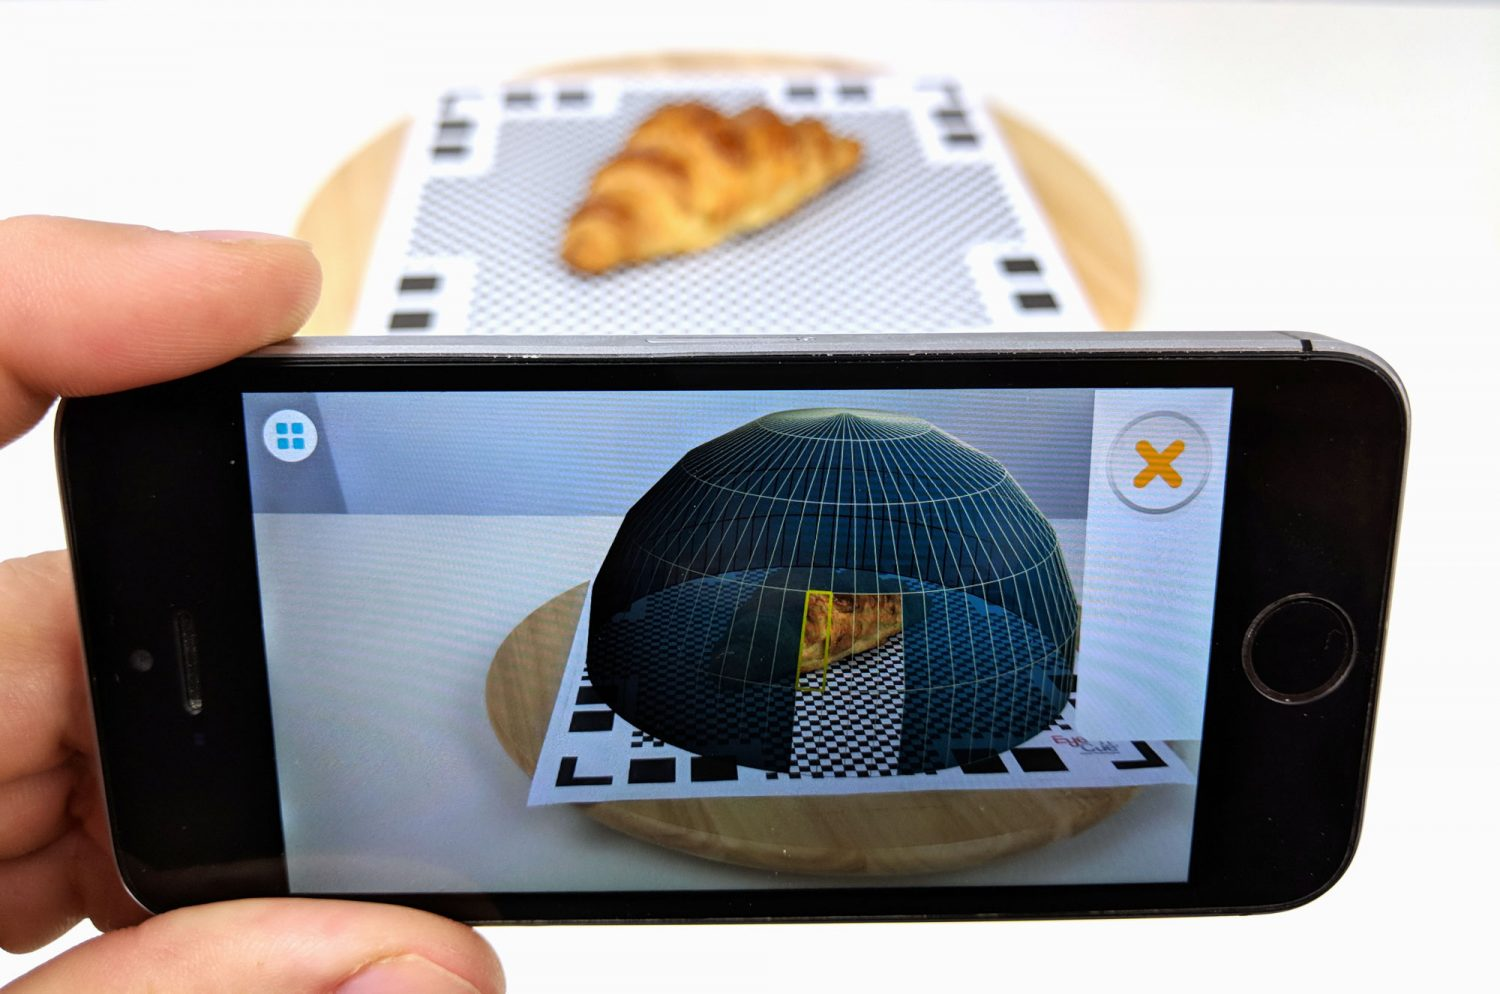 Qlone Smartphone 3D Scanning App Review - 3D Scan Expert